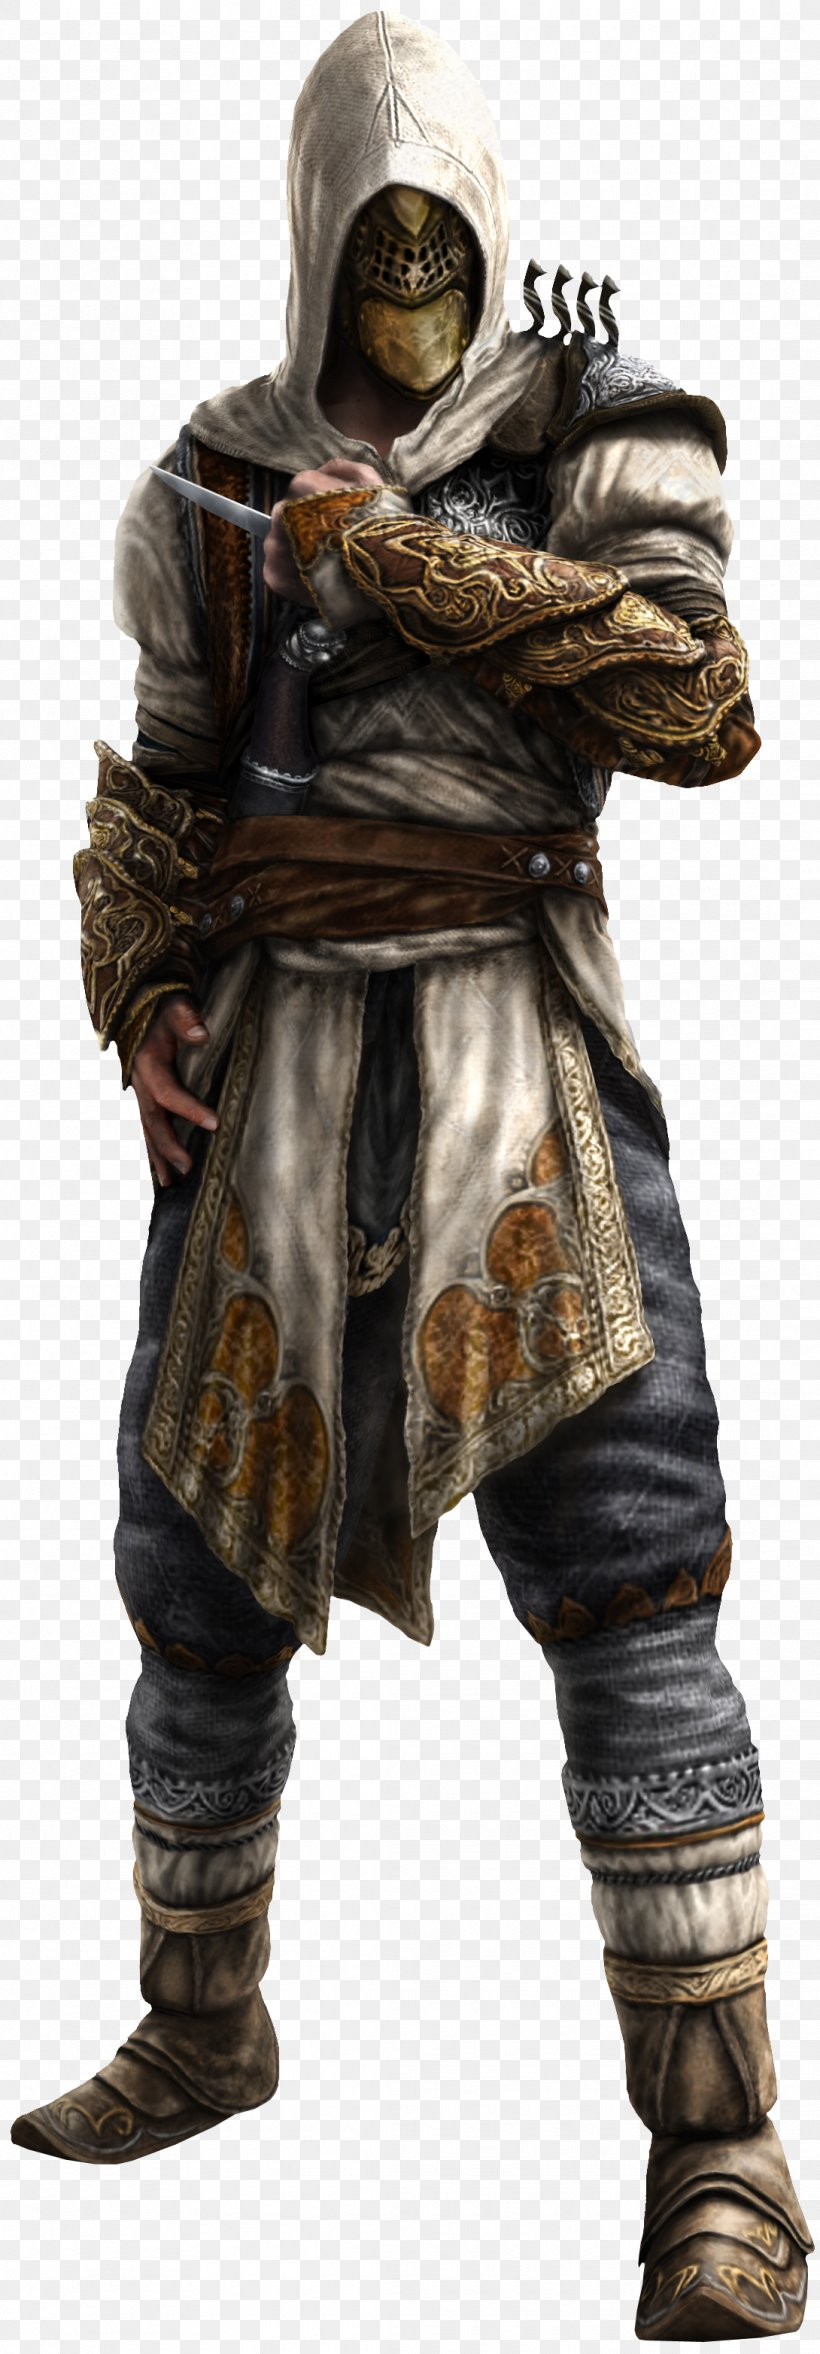 Assassin's Creed: Revelations Assassin's Creed: Brotherhood Assassin's Creed III, PNG, 1090x3130px, Assassin S Creed, Armour, Assassin S Creed Ii, Assassin S Creed Iii, Assassins Download Free